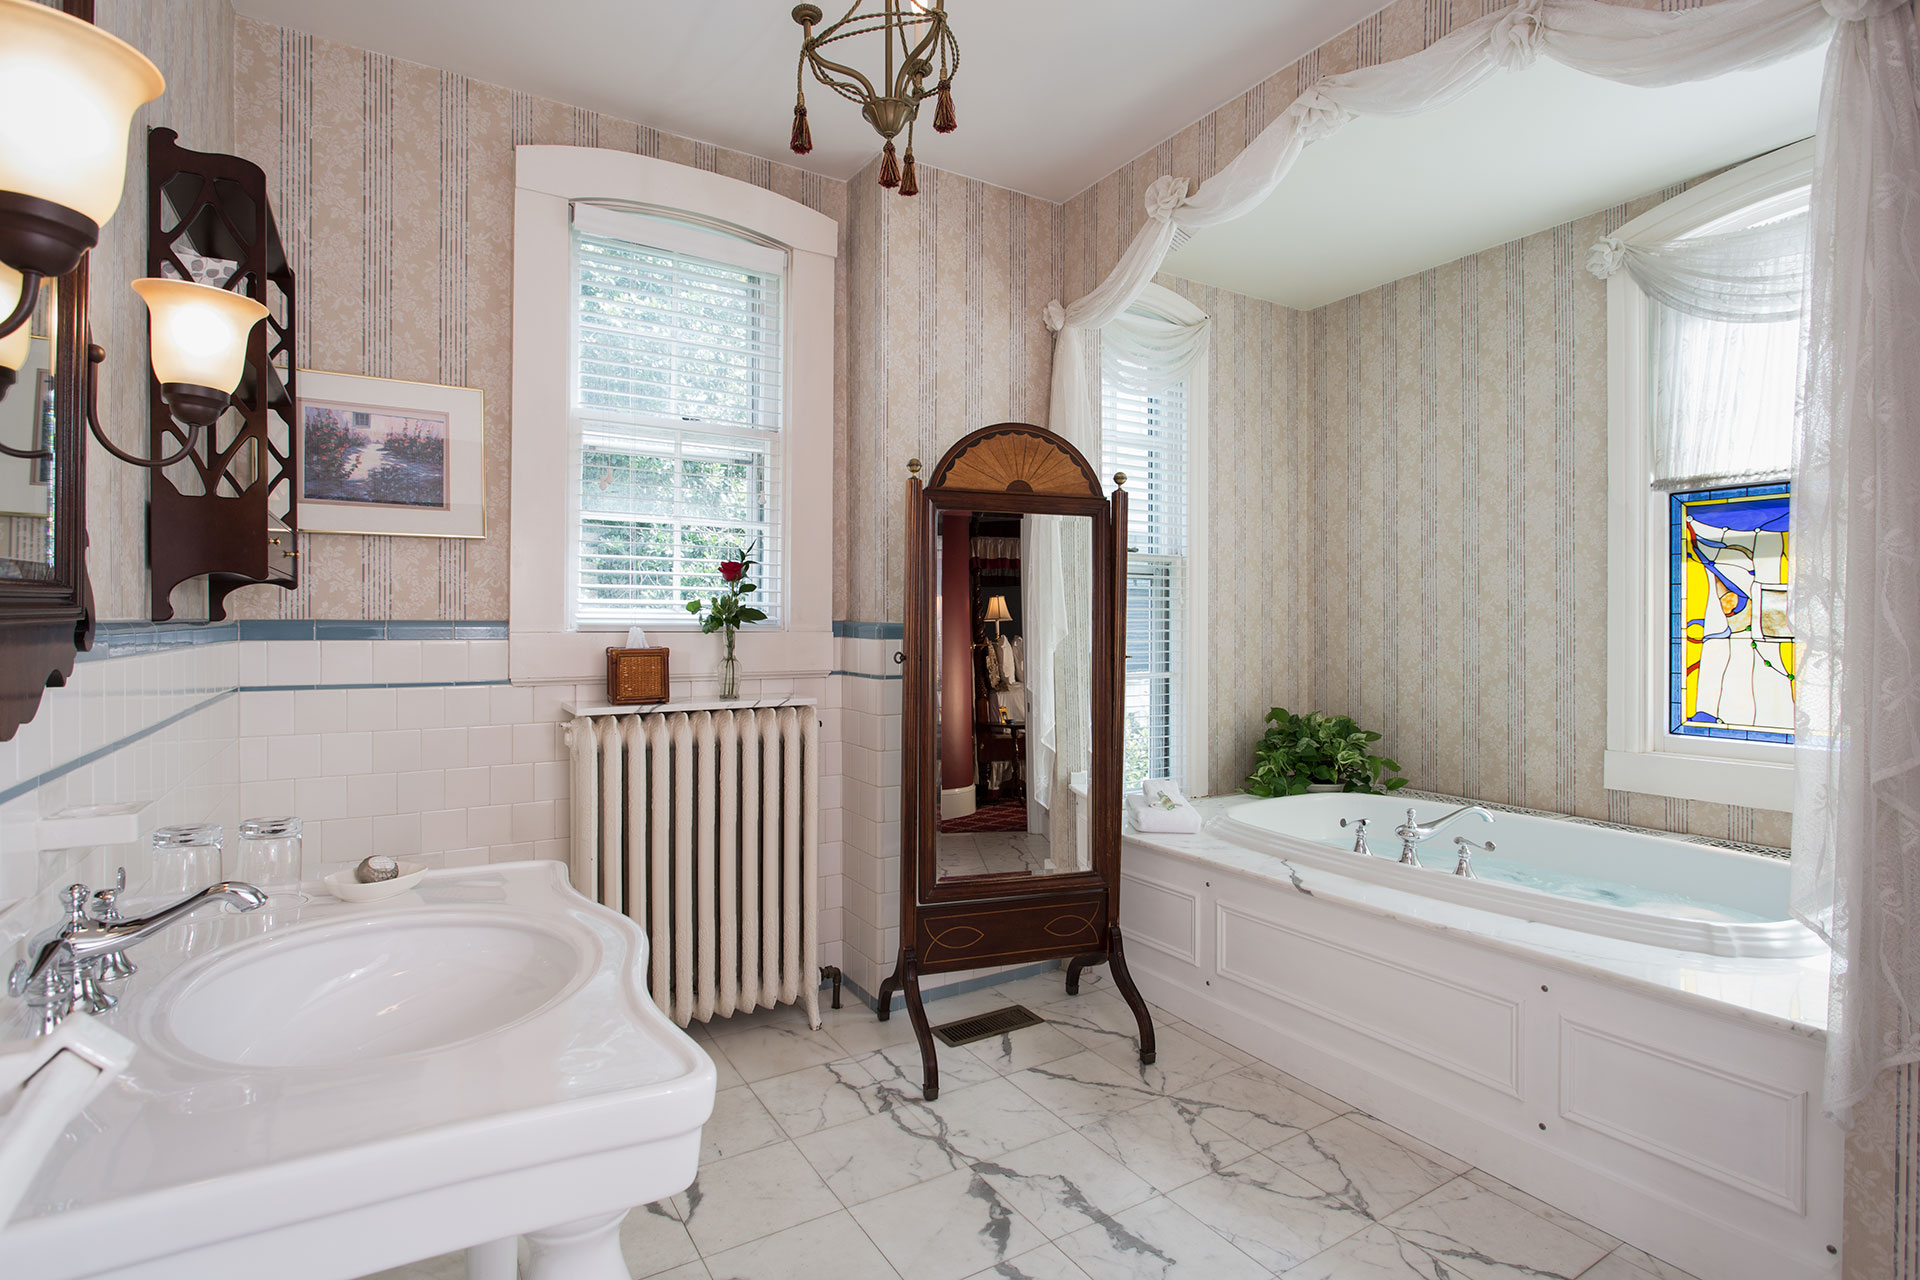 La-Farge-Perry-House_John-La-Farge-Bathroom.jpg